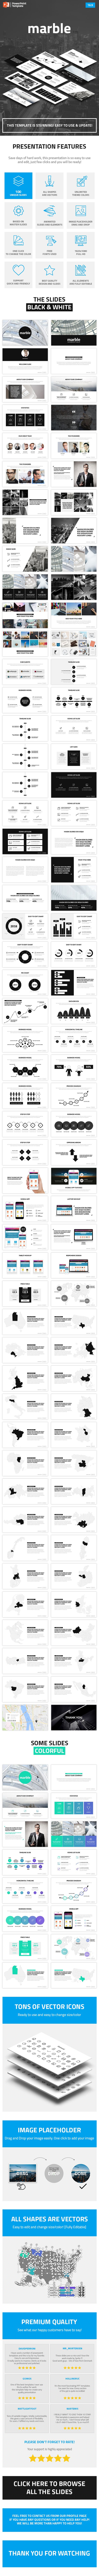 marble minimal business powerpoint template pinterest business